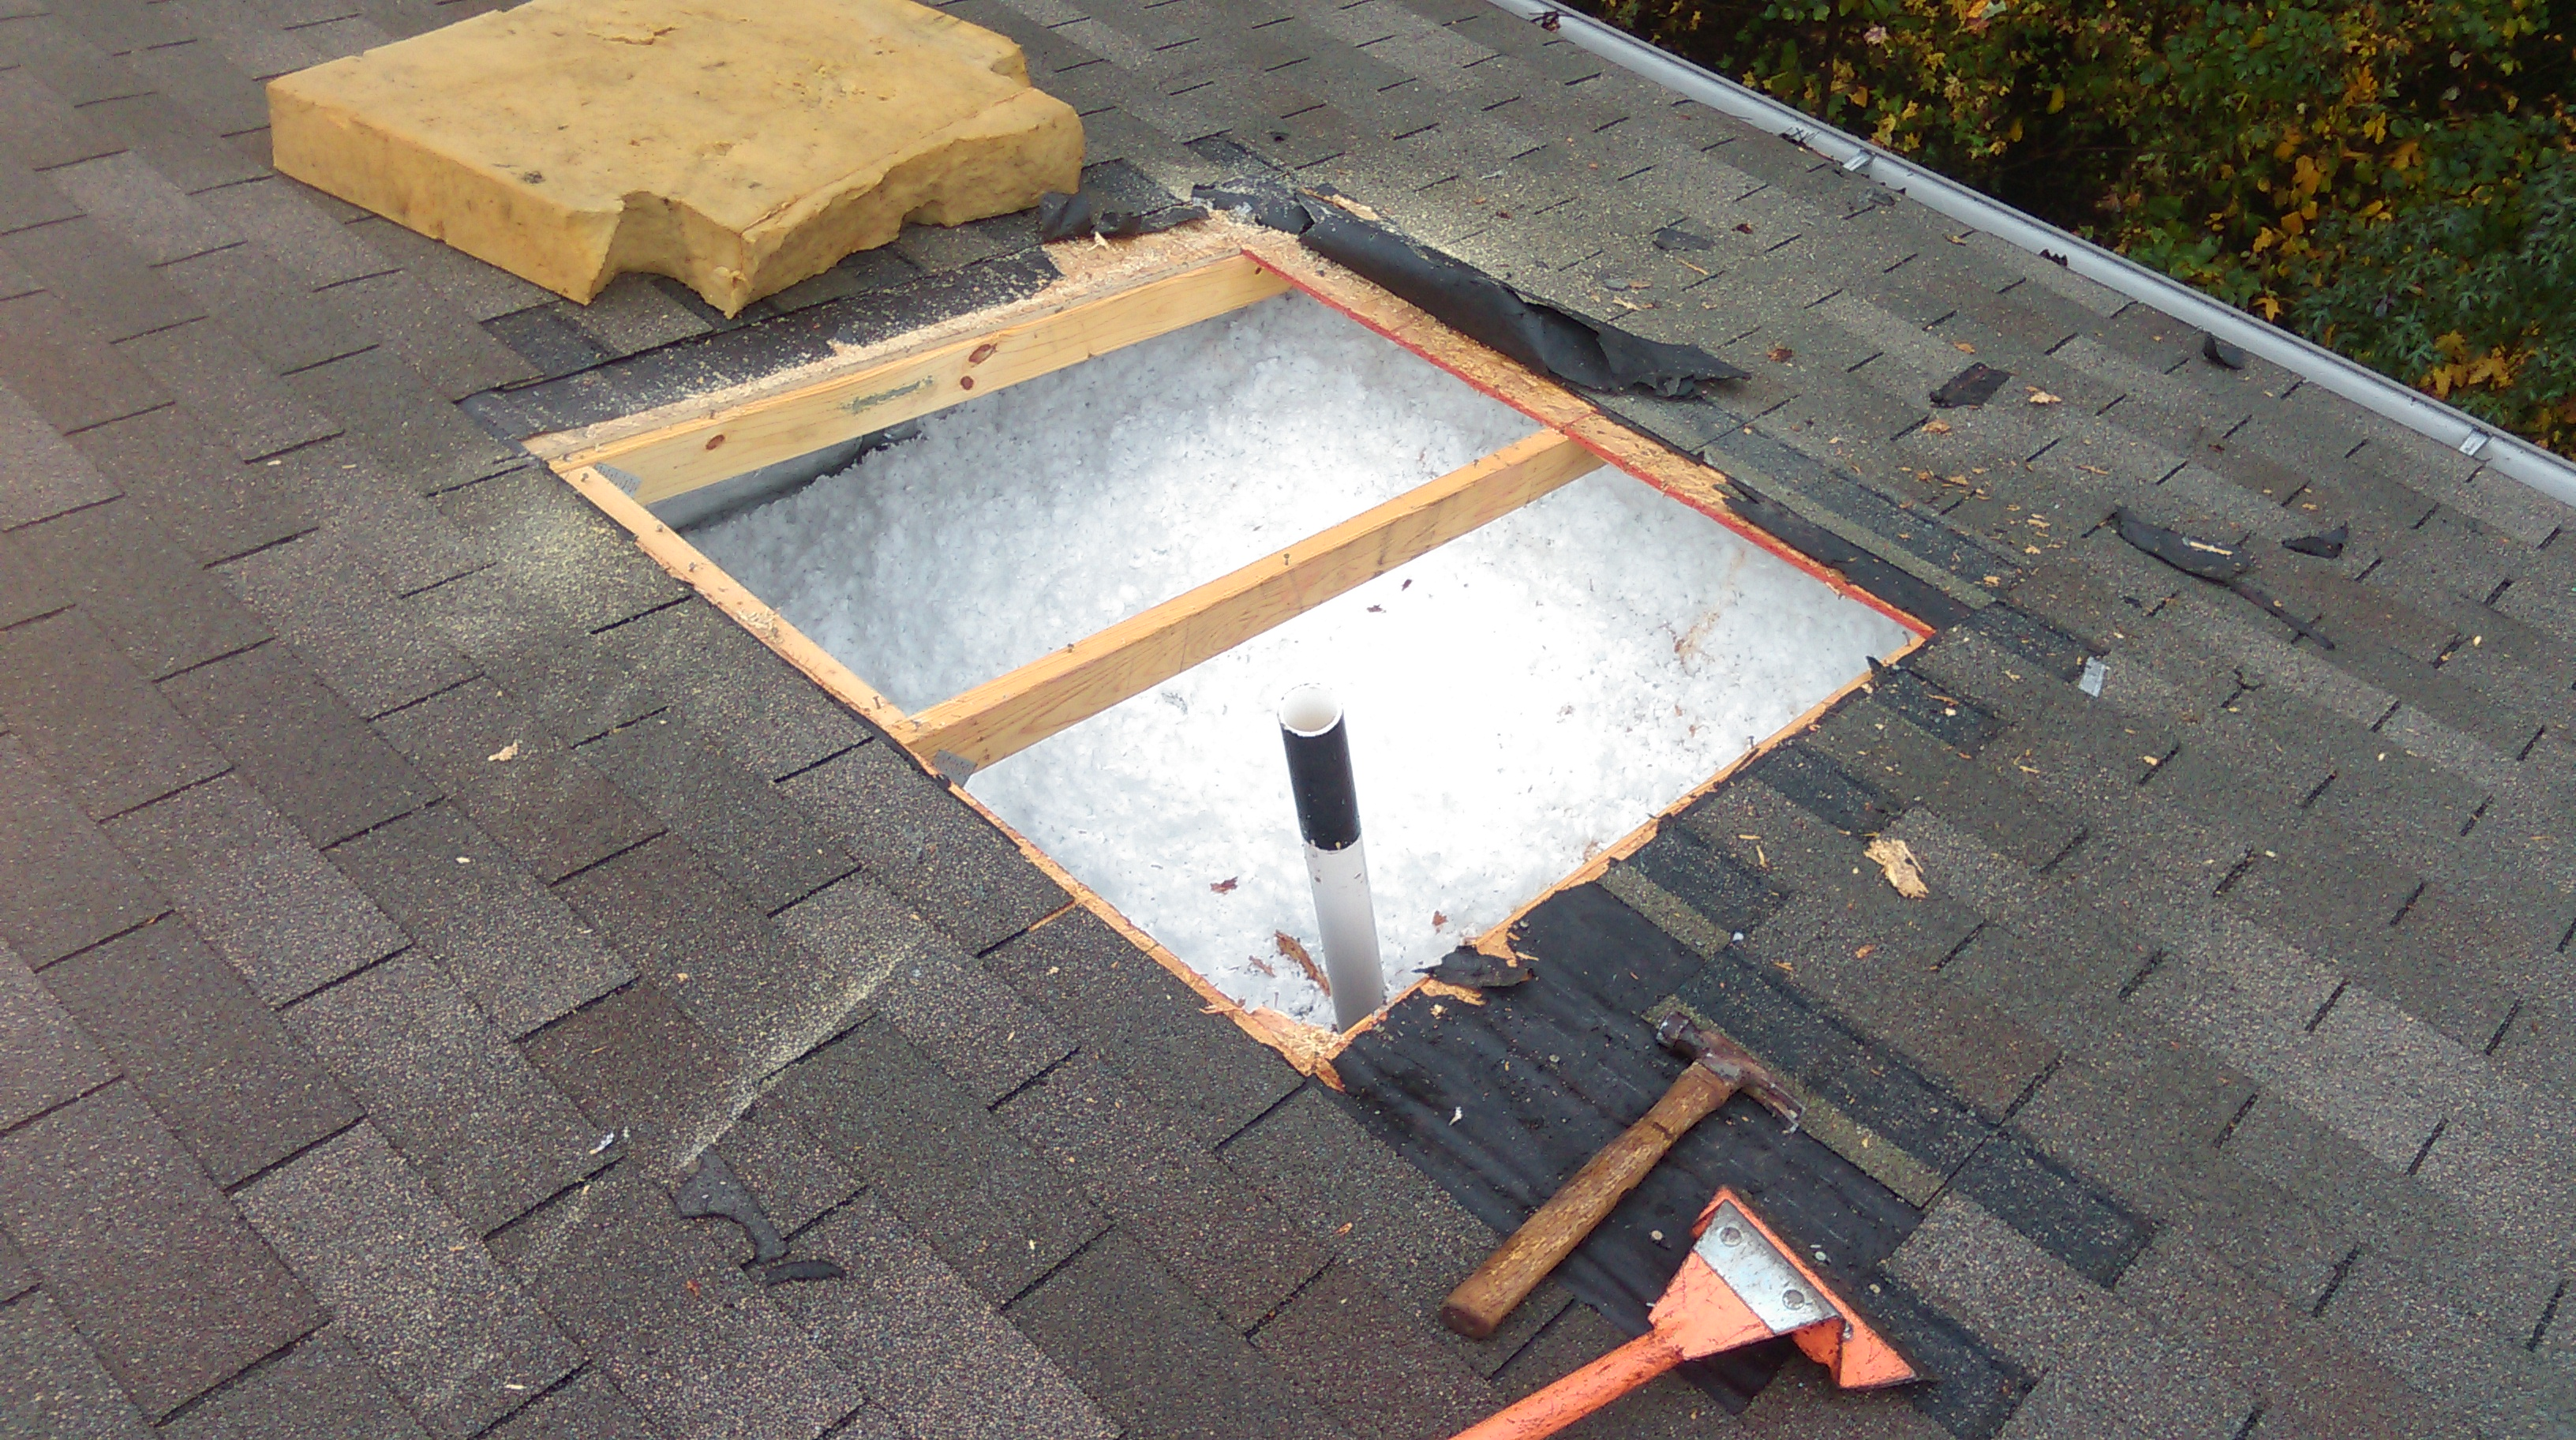 Roof Repairs done right with warranty / Fully insured with workers comp and general liability